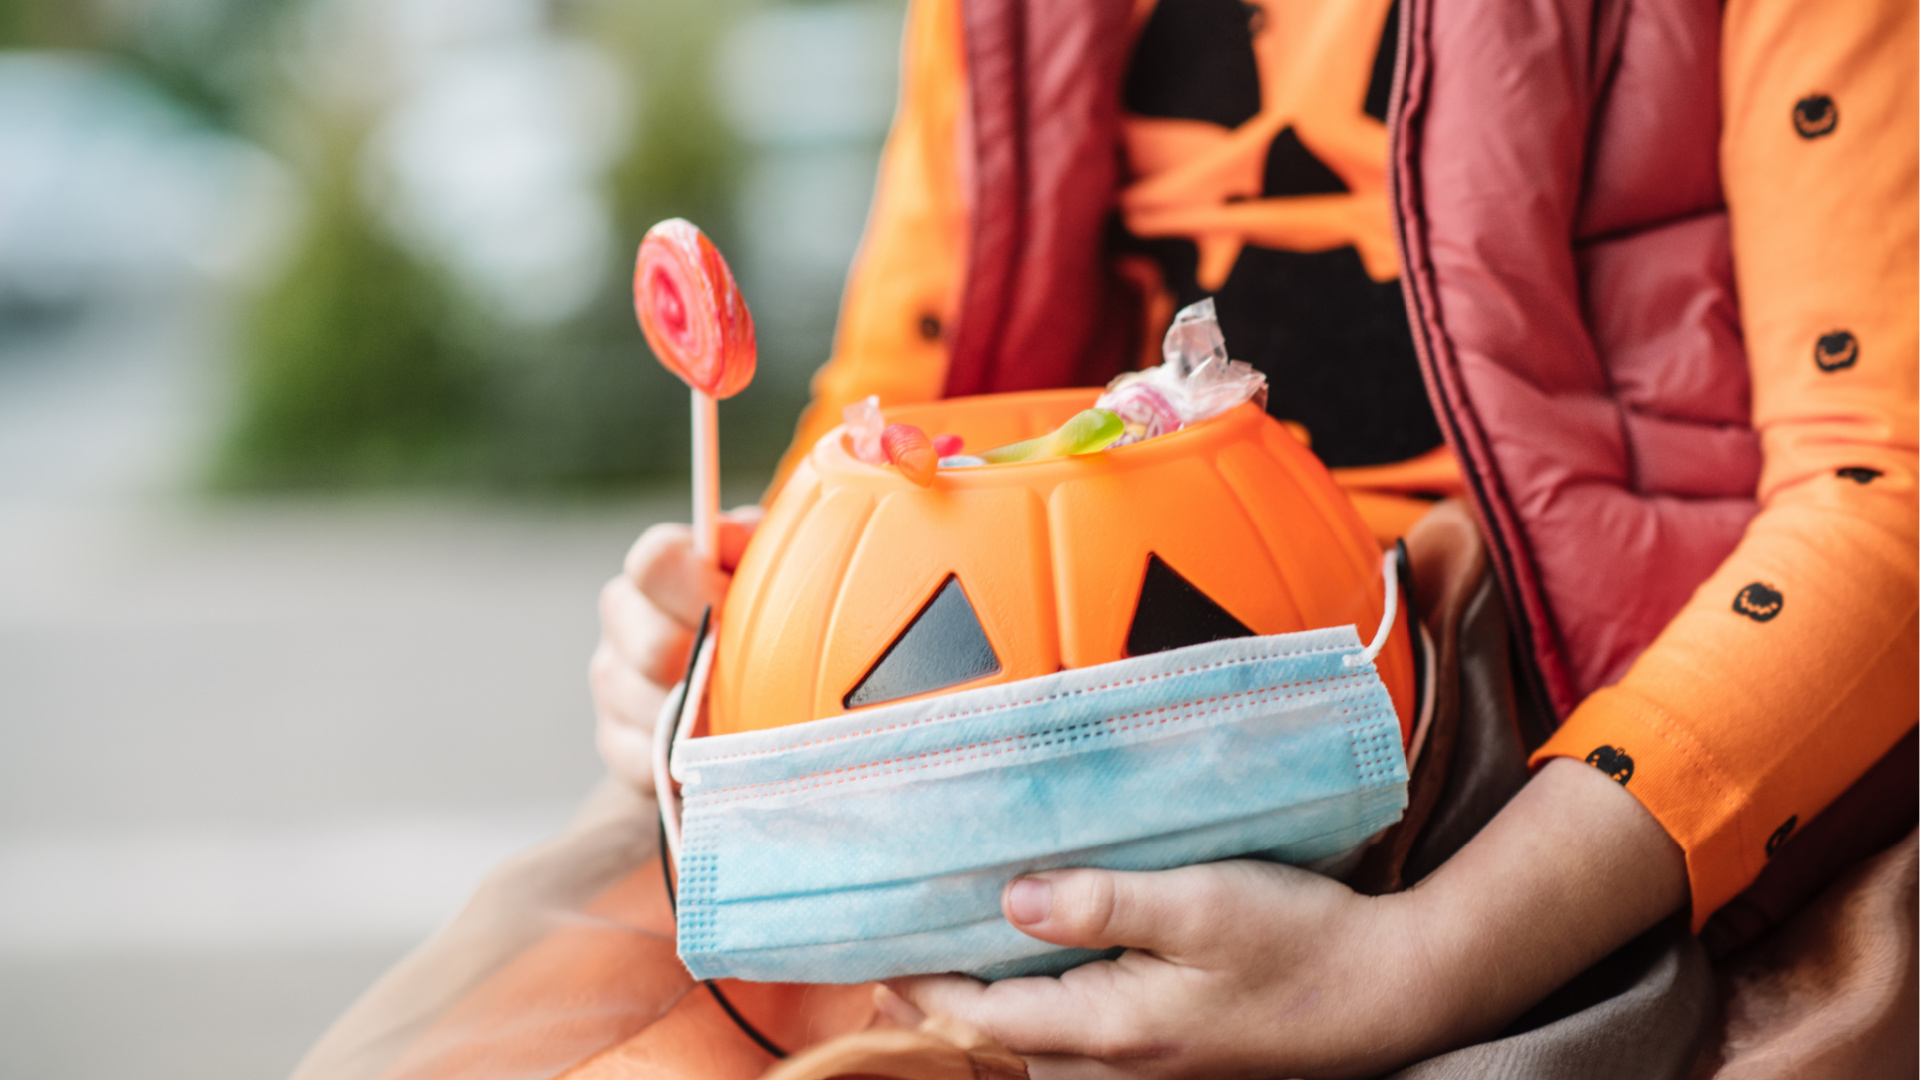 Halloween 2020 Things To Do Winston Salem CDC ranks Halloween activities by COVID 19 risk: No trick or